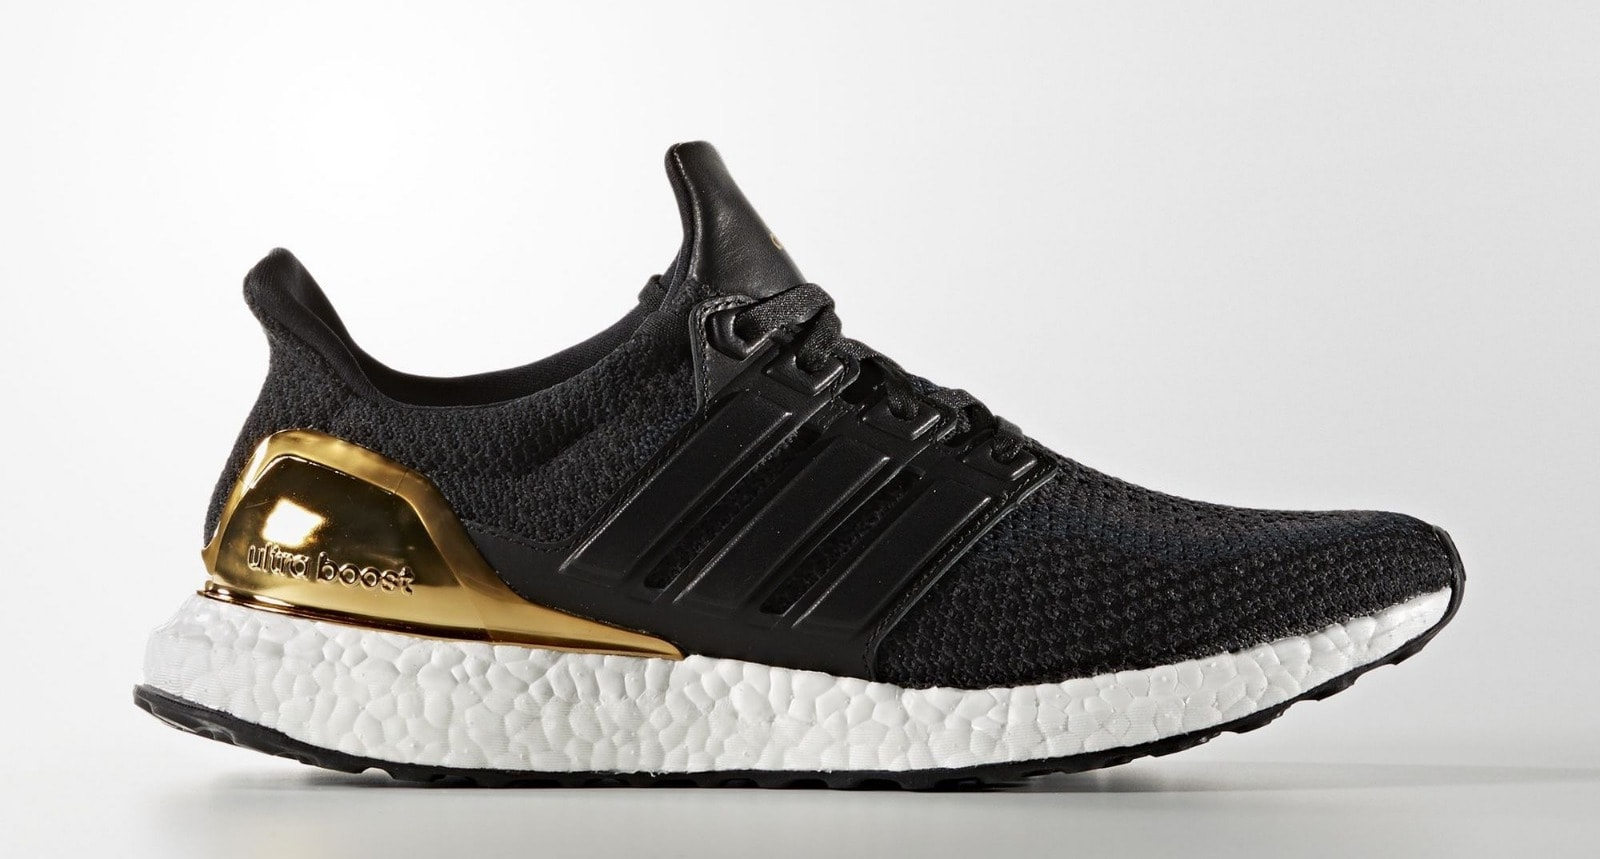 f4562566a0e bought ultraboost gold medal last month when in hk while on sneakers street  my 1st ub